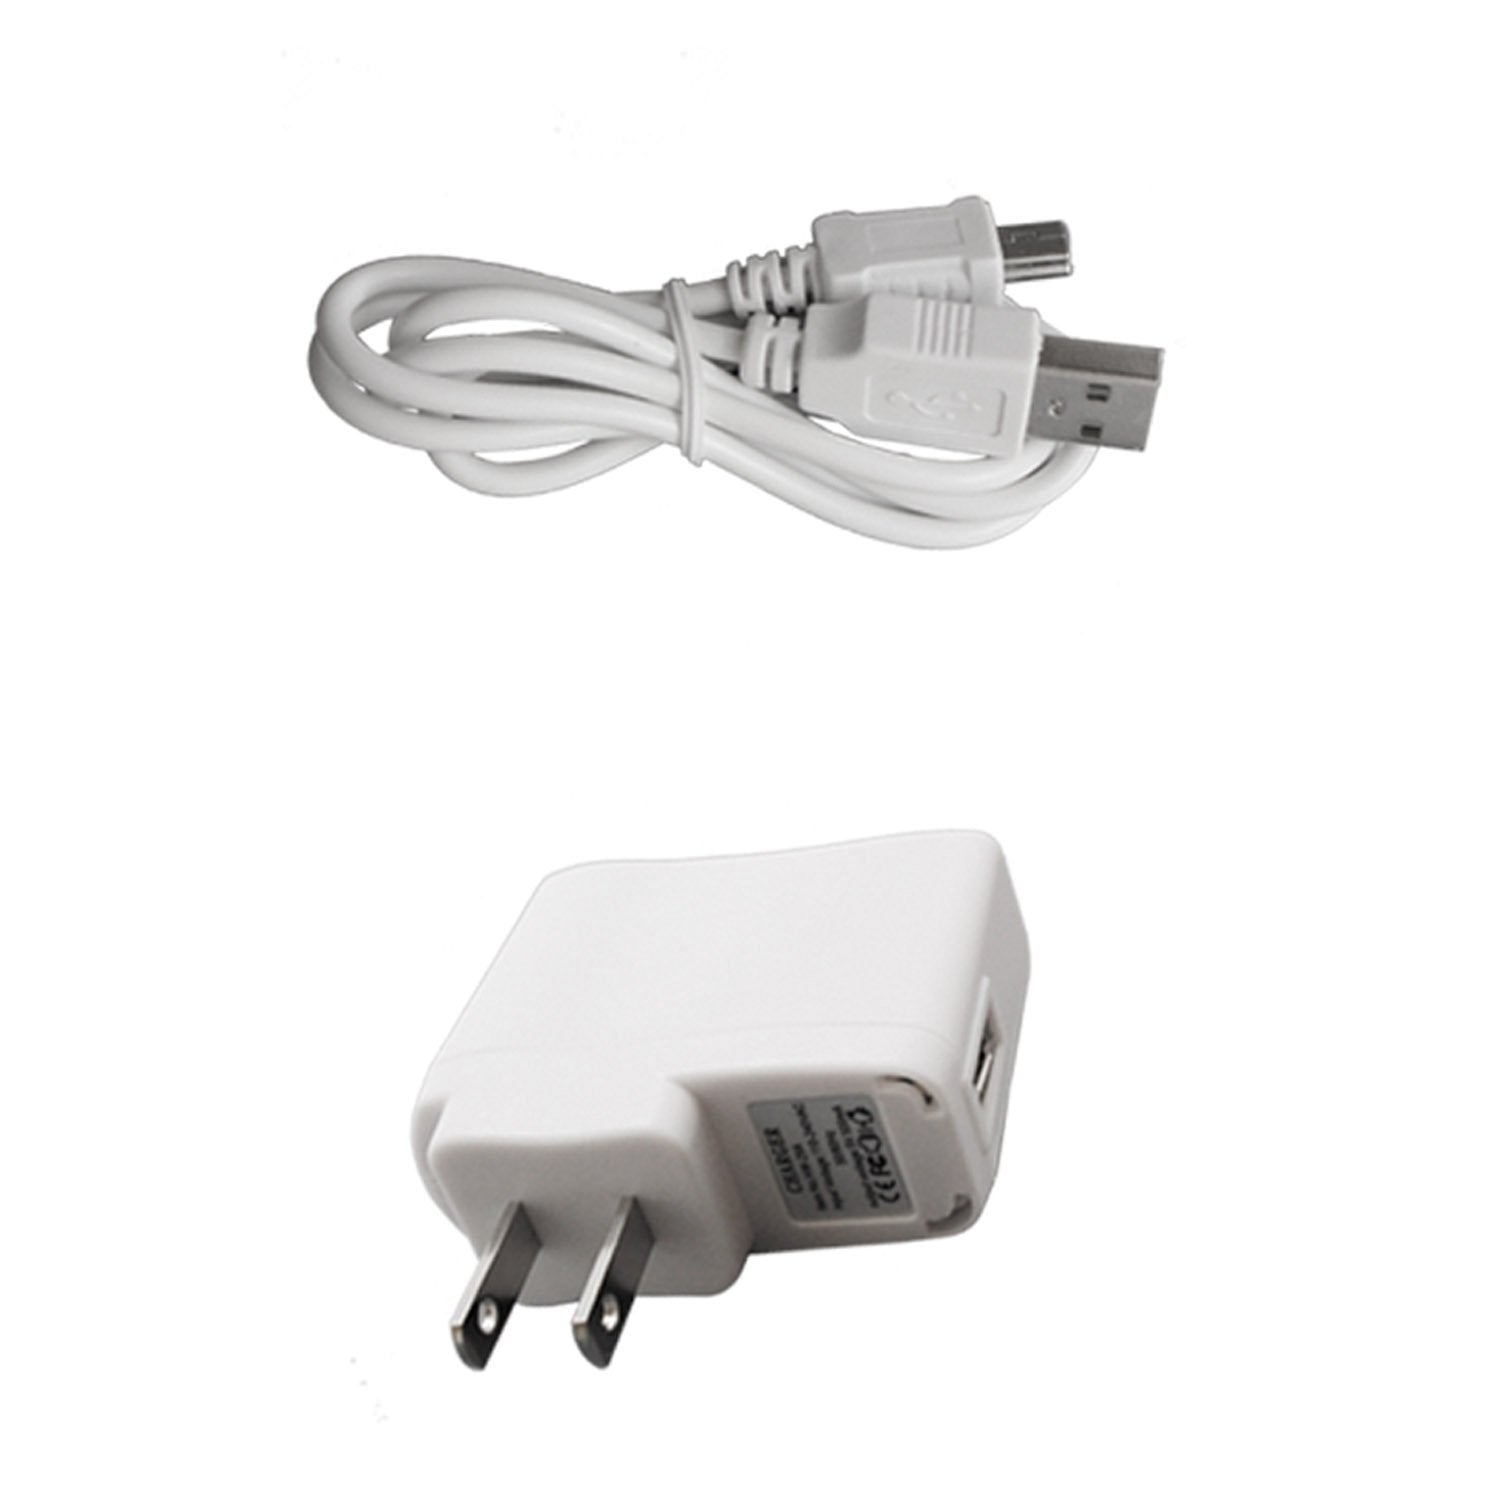 USB Cable & AC Adapter - HealthmateForever